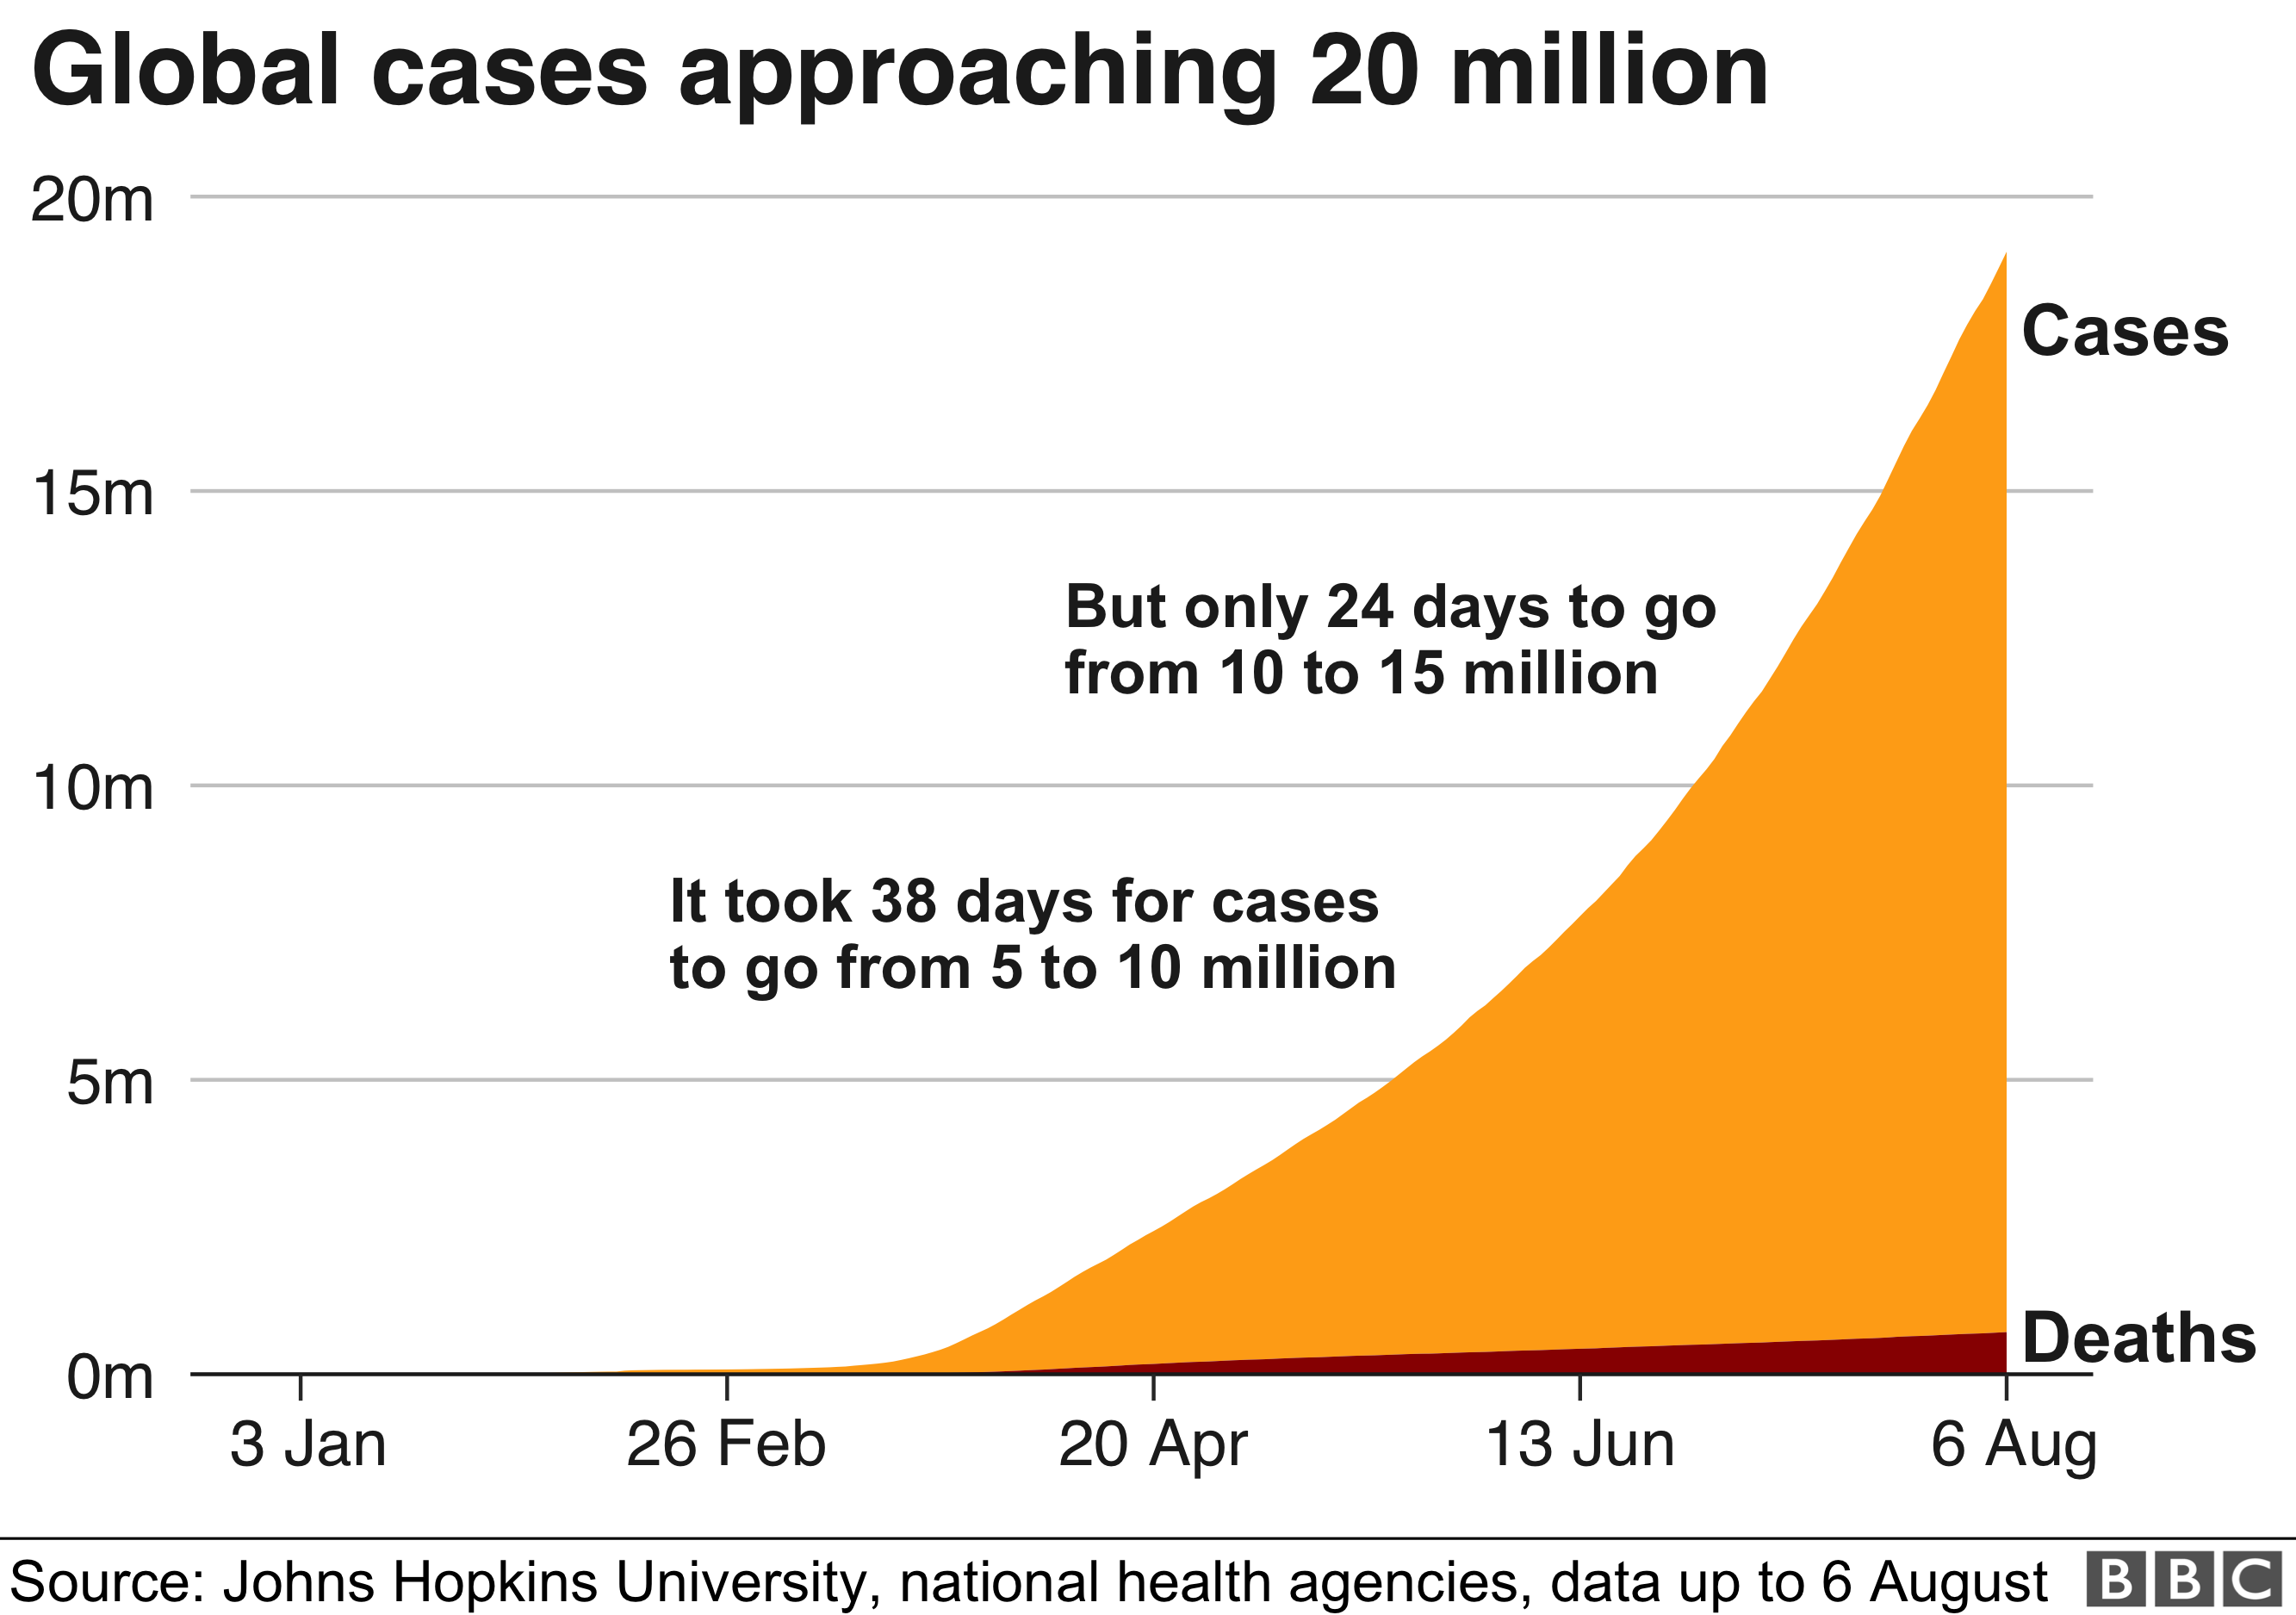 Area chart showing the number of global cases is fast approaching 20 million